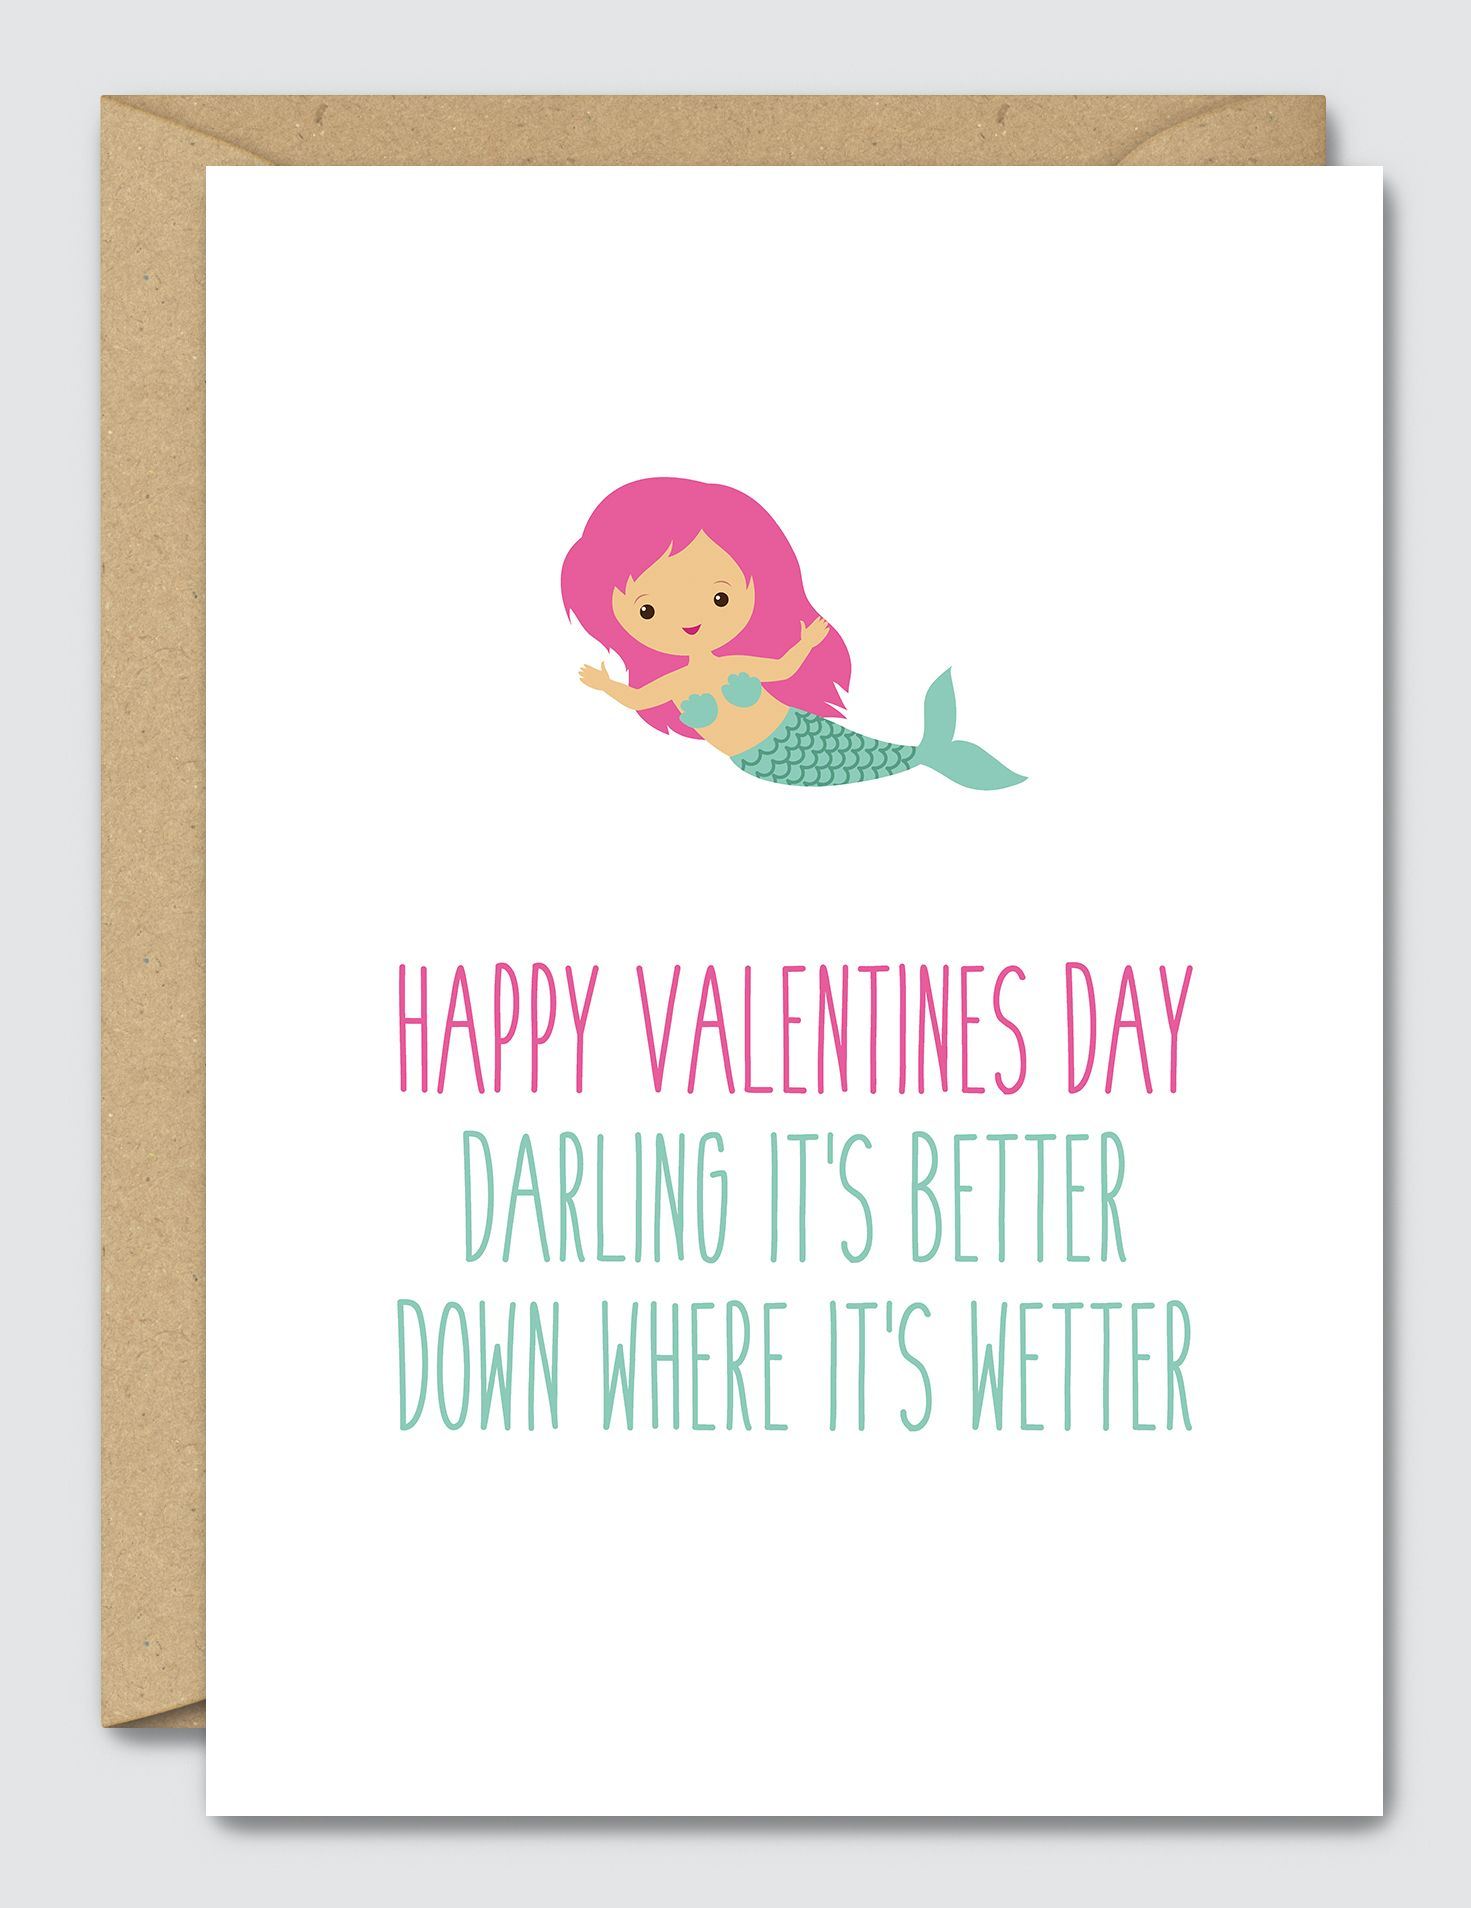 Happy Valentines Day Darling Its Better Down Where Its Wetter